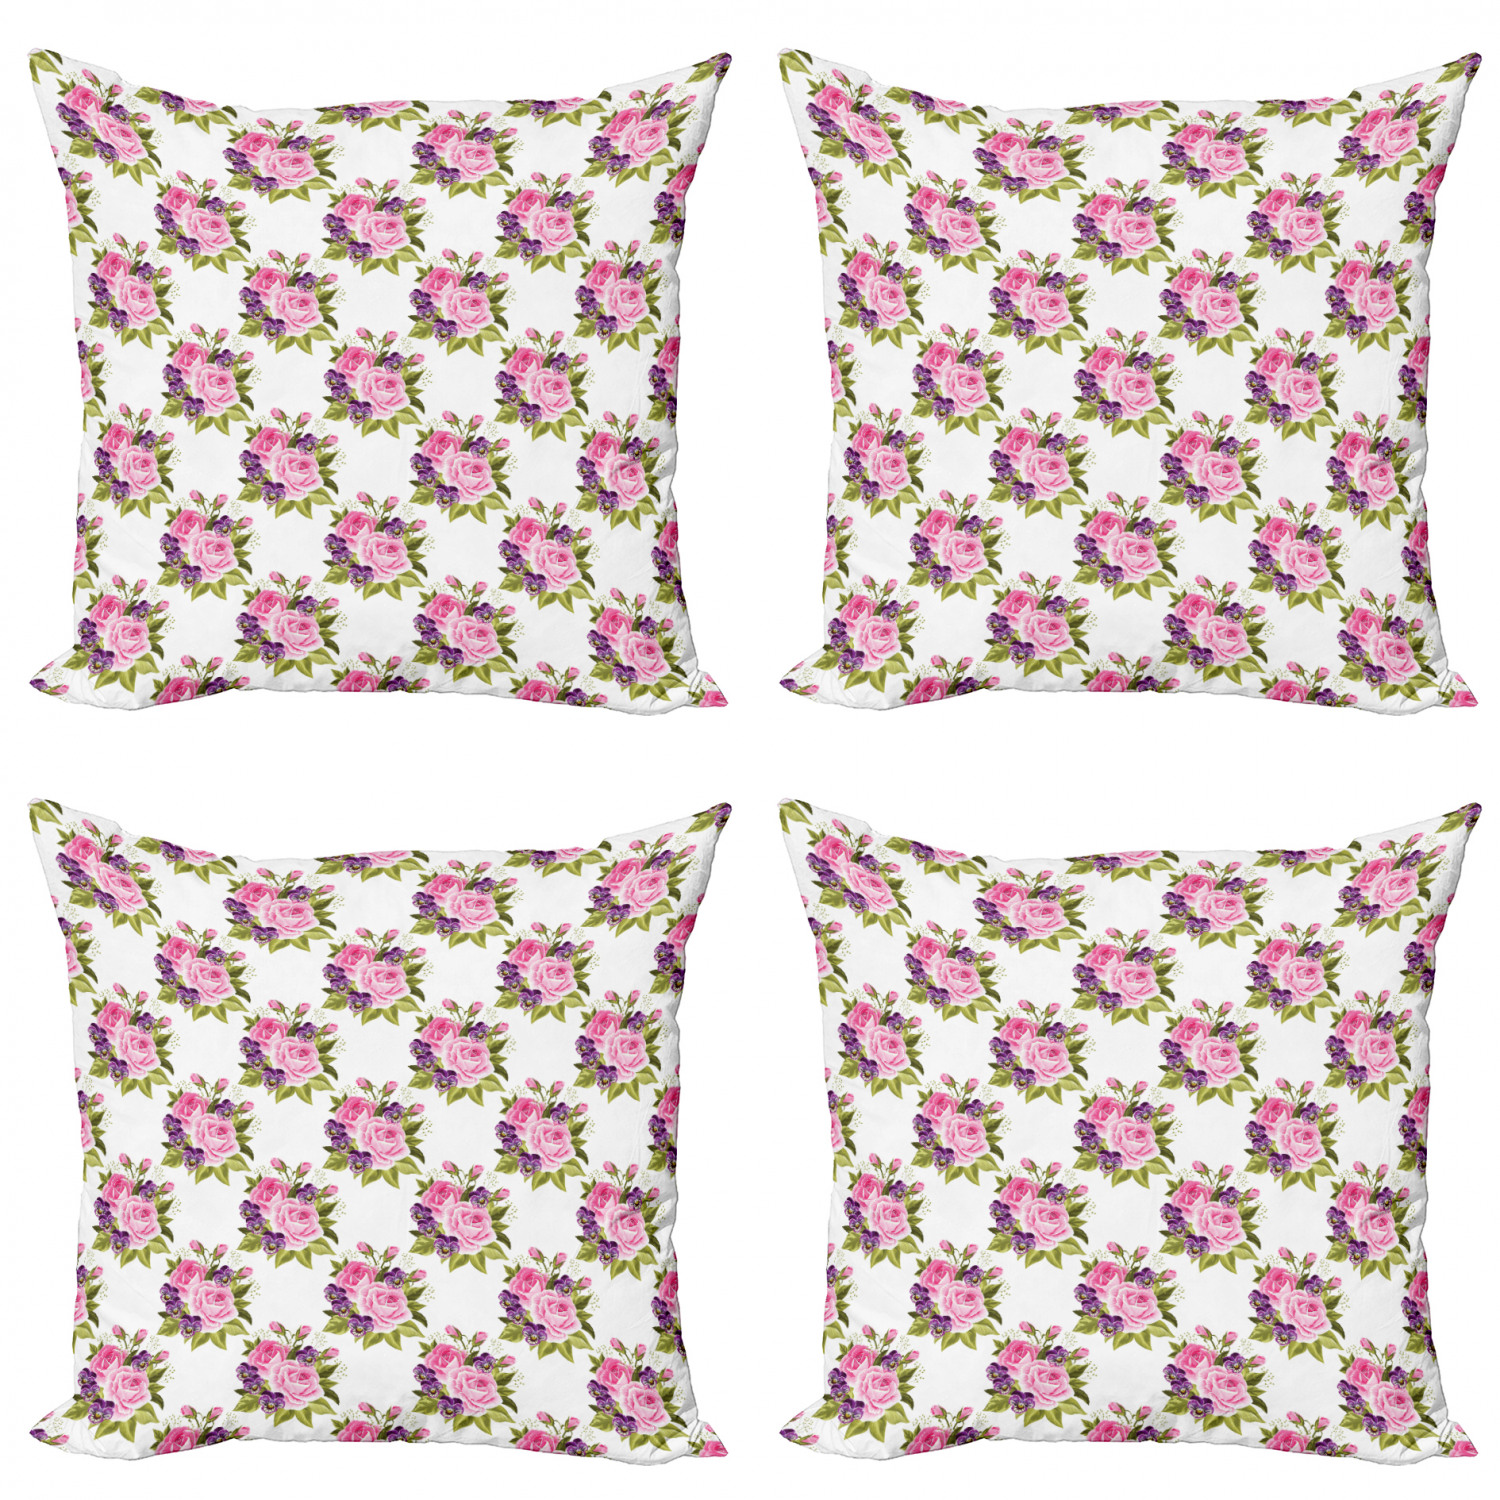 Ambesonne-Floral-Drawings-Cushion-Cover-Set-of-4-for-Couch-and-Bed-in-4-Sizes thumbnail 26